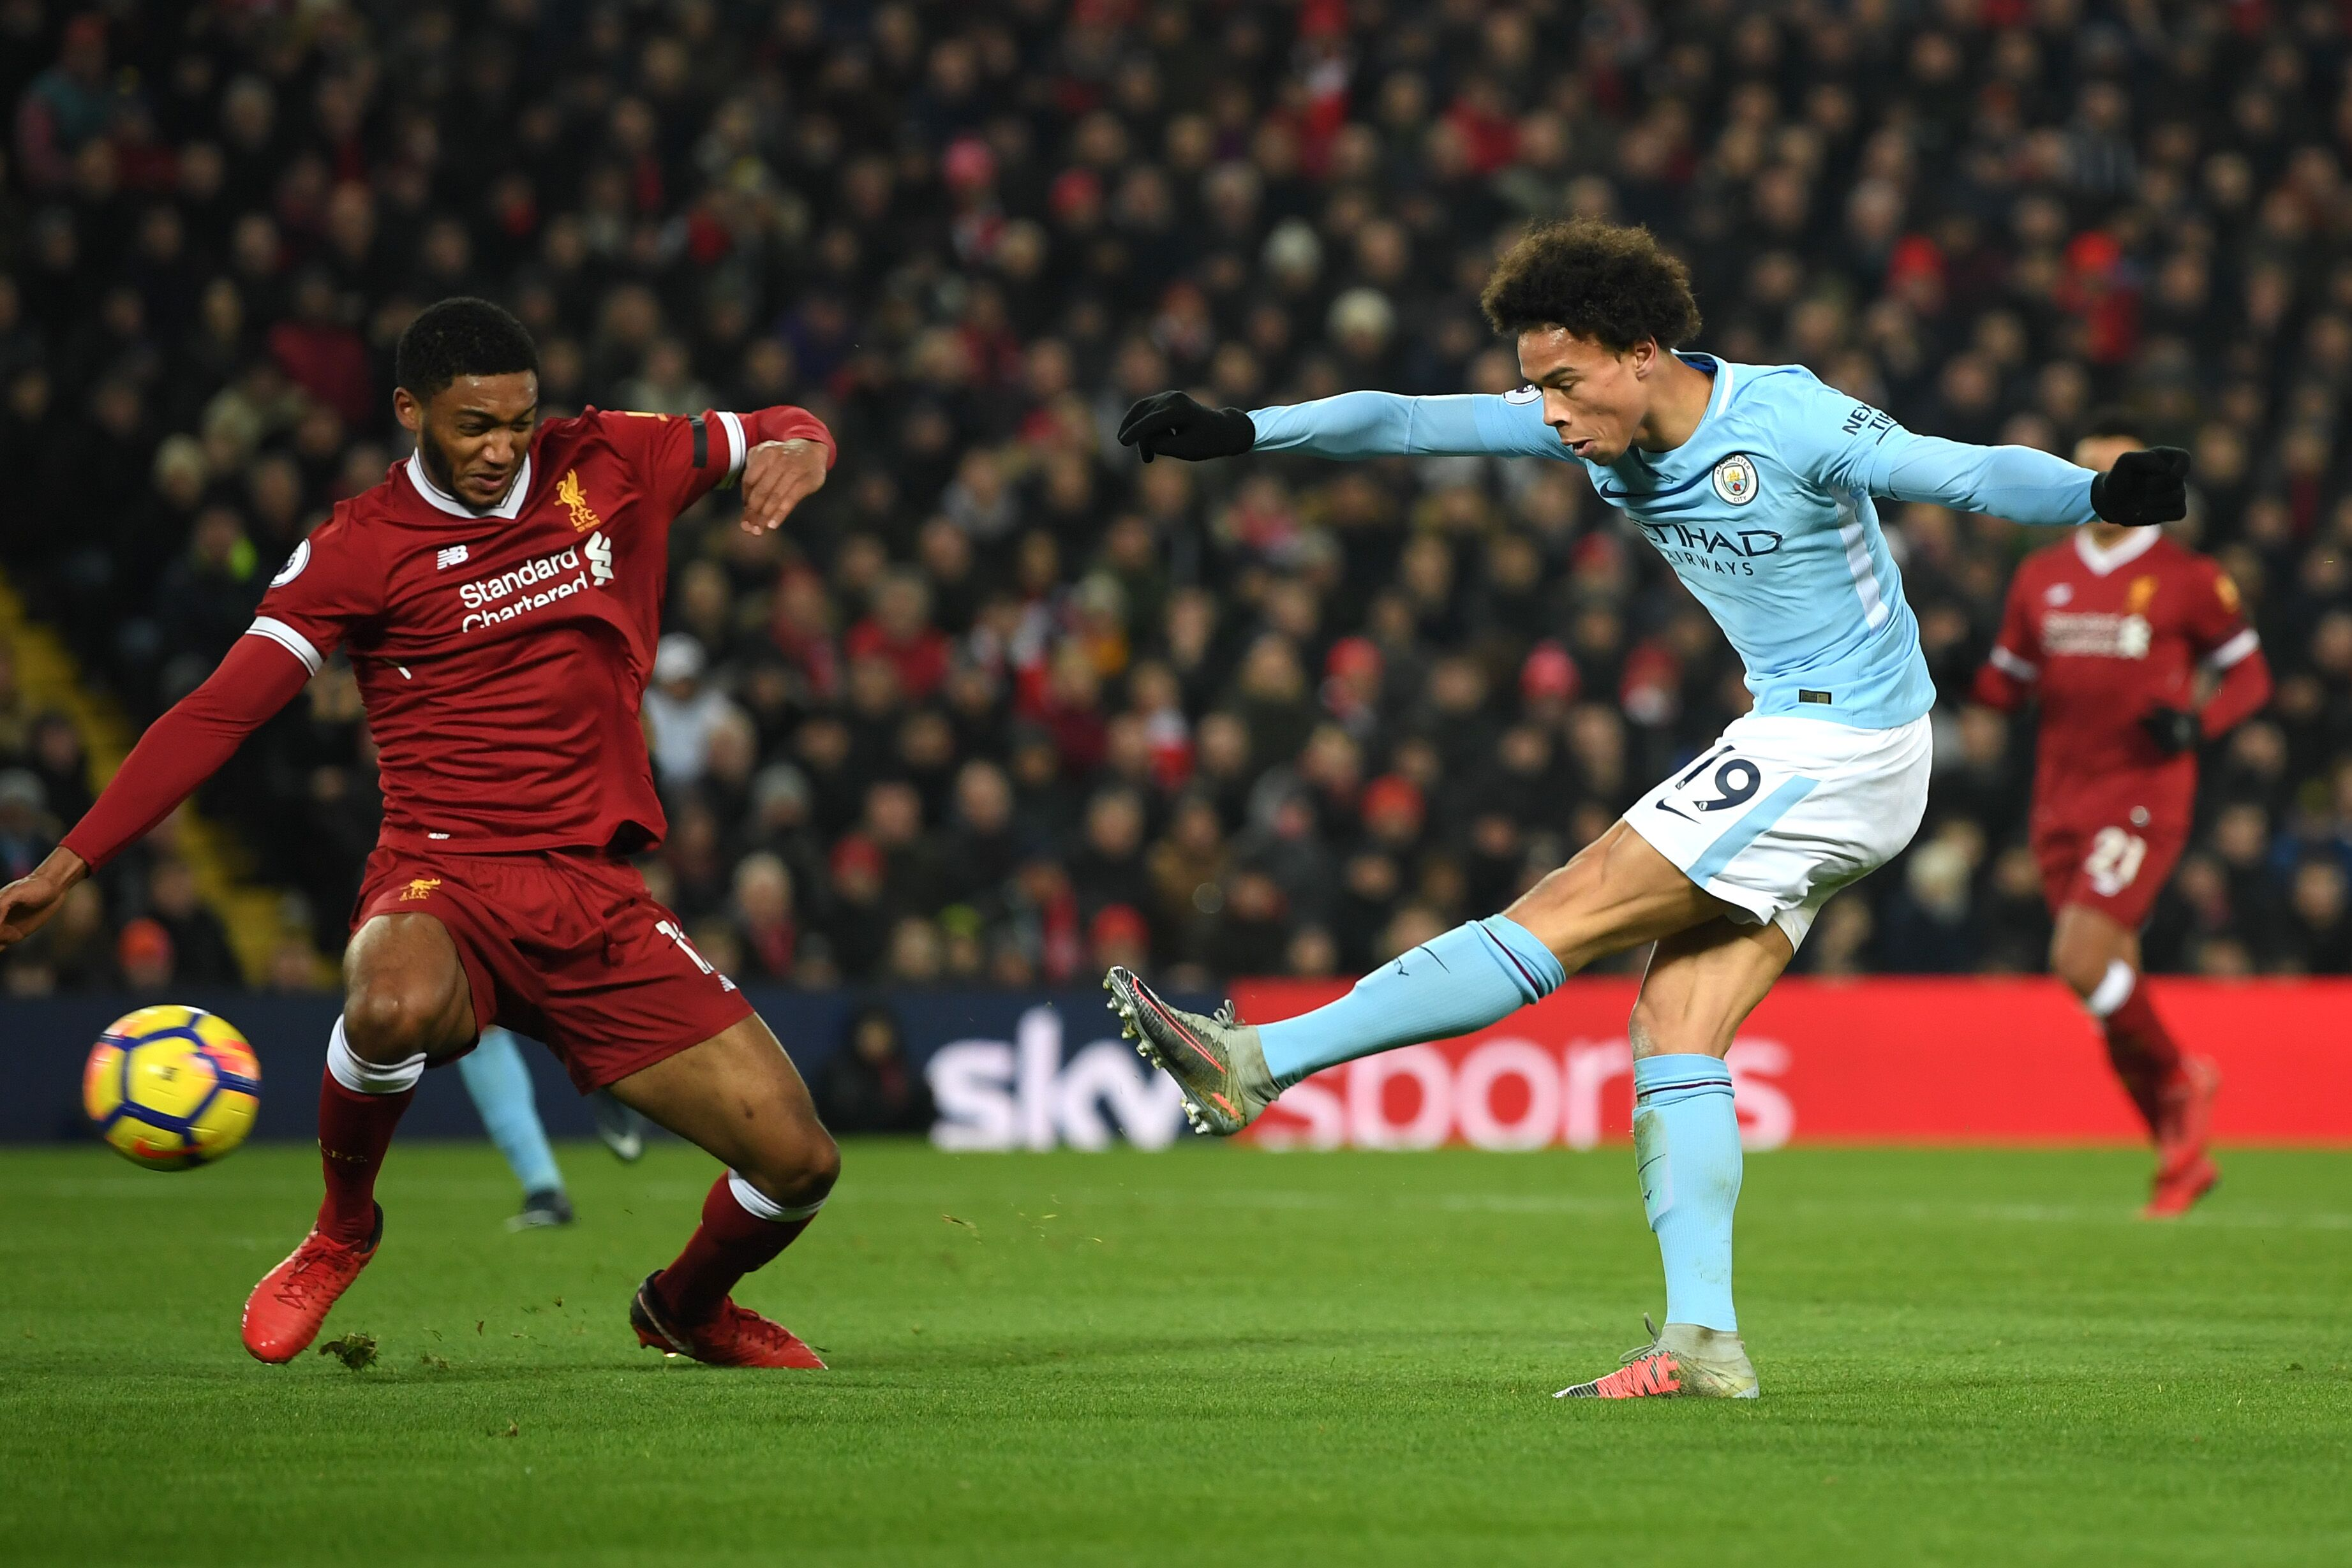 Liverpool Vs Man City: Liverpool Vs. Manchester City Live Stream: Watch Champions